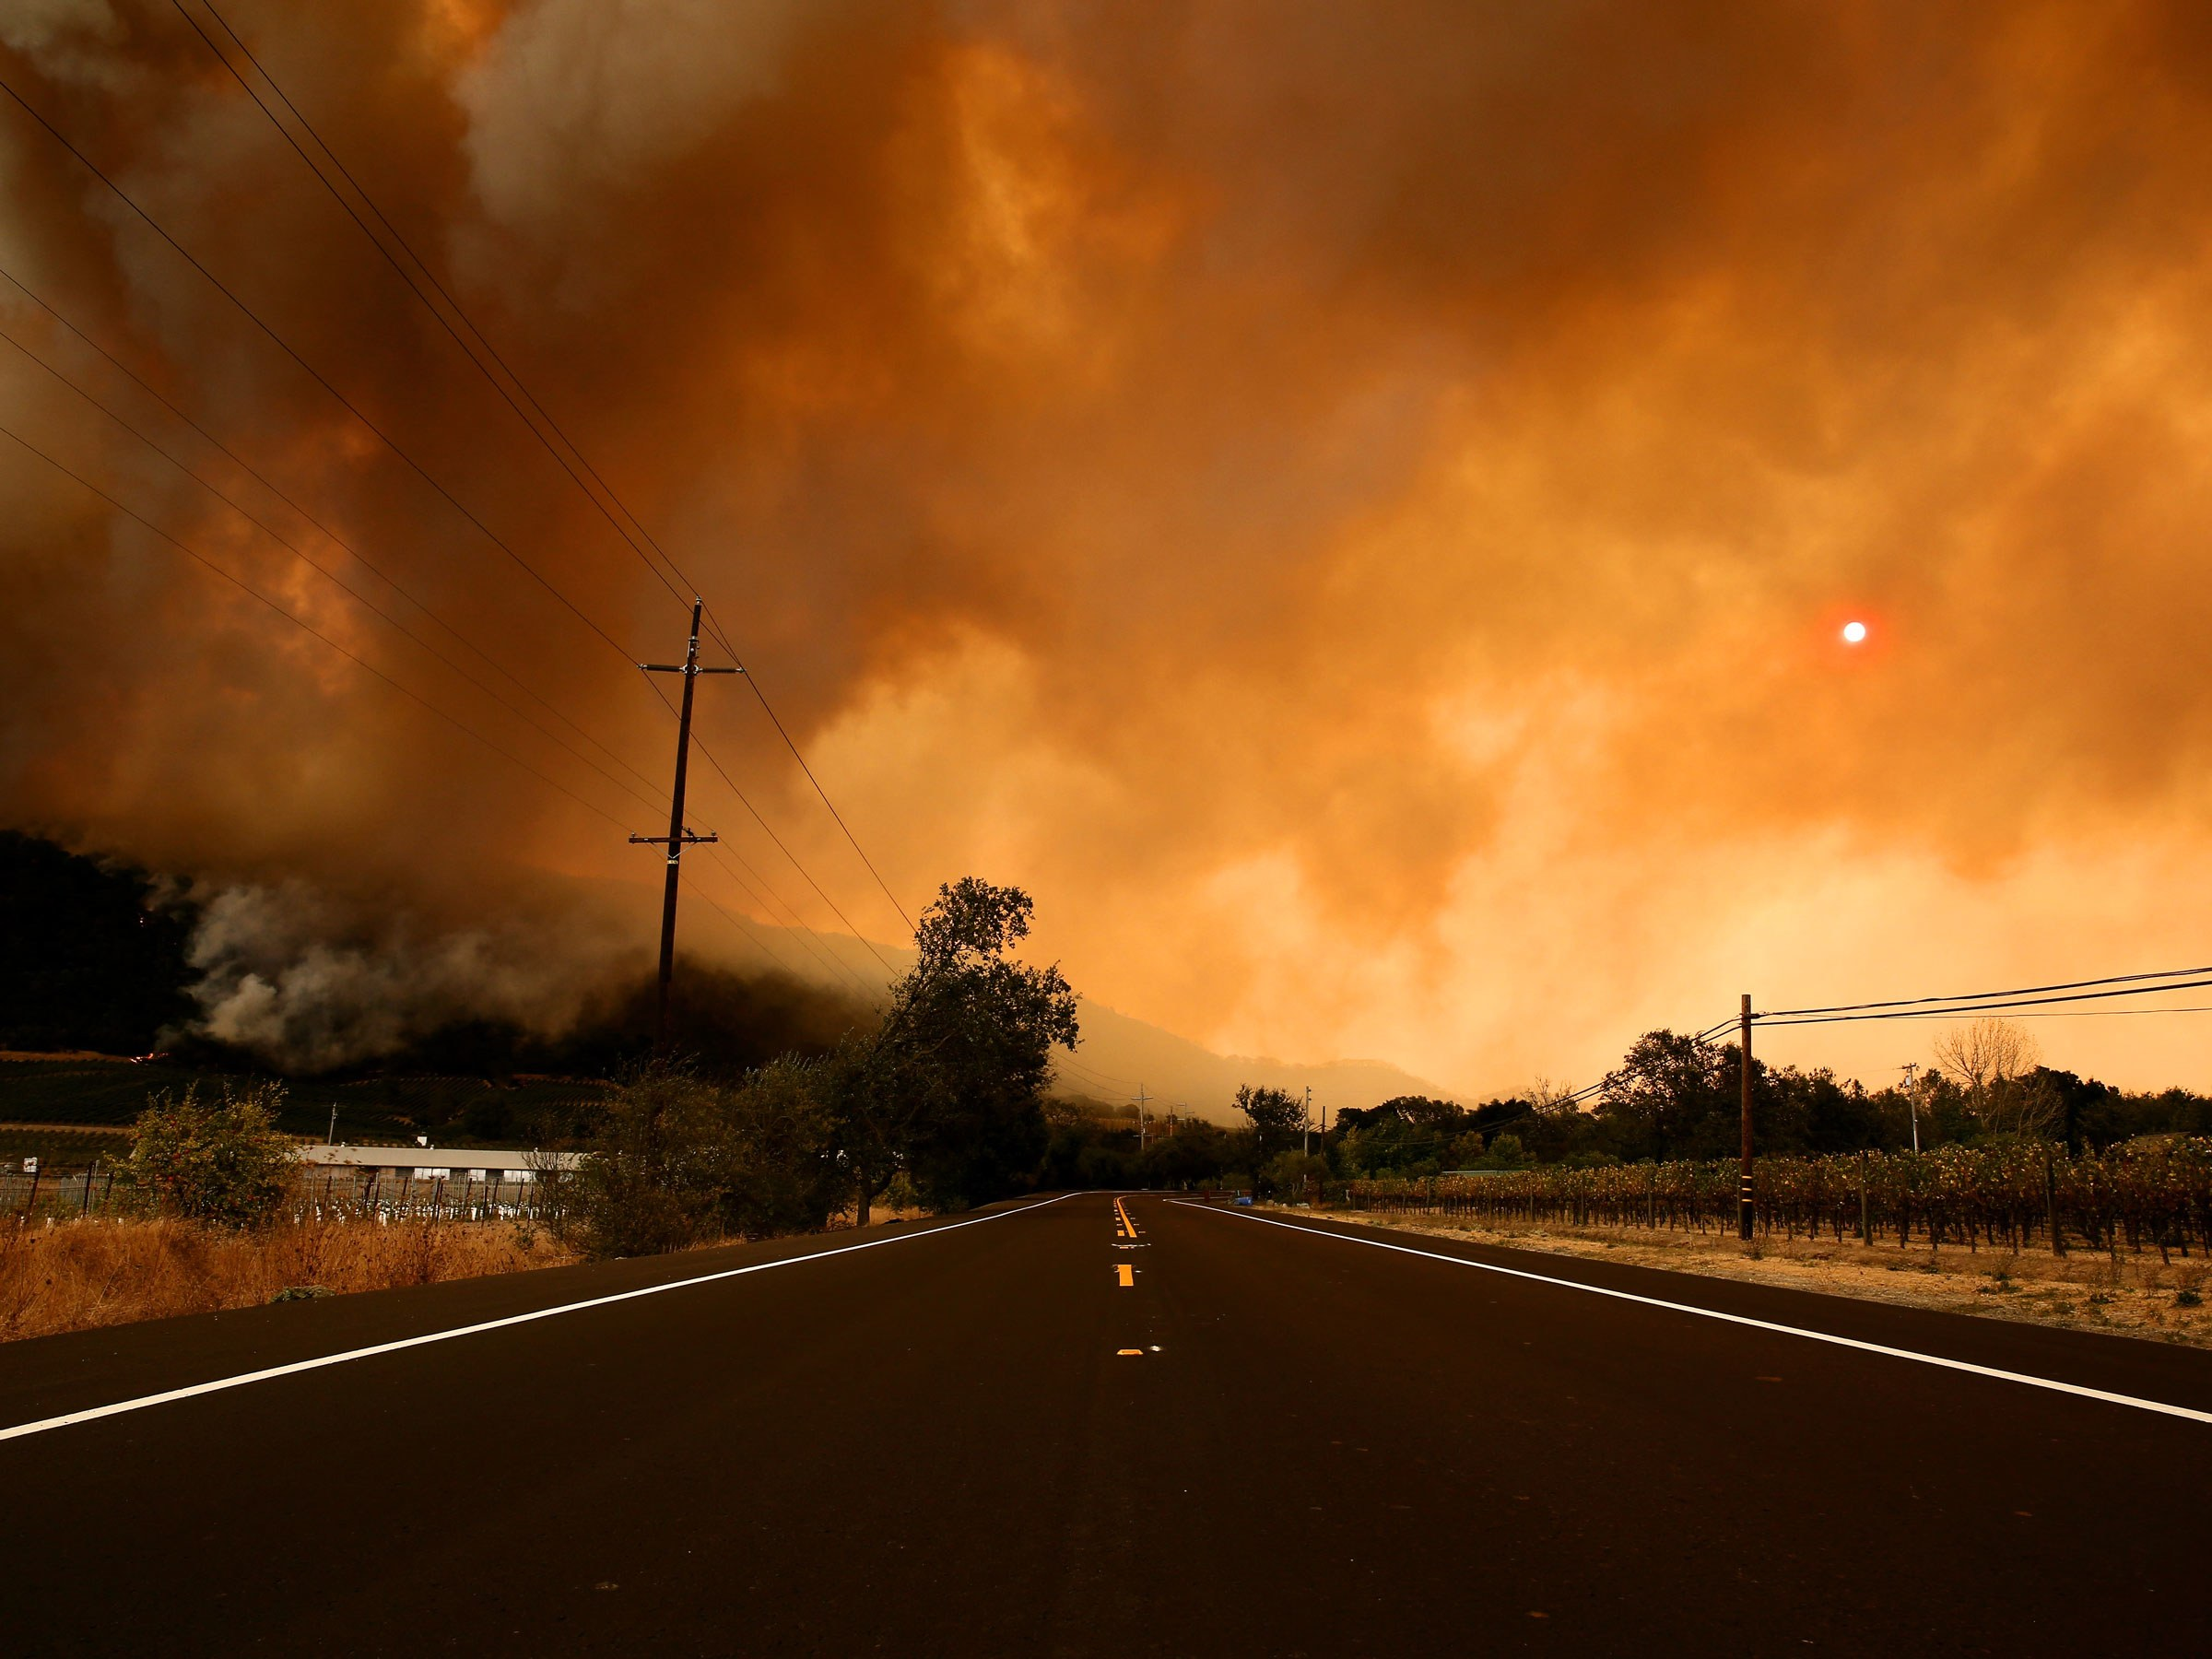 Fires in Sonoma, Napa, and Santa Rosa have burned more the 170,000 acres and forced over 20,000 people to evacuate. (Photo from: Wired)